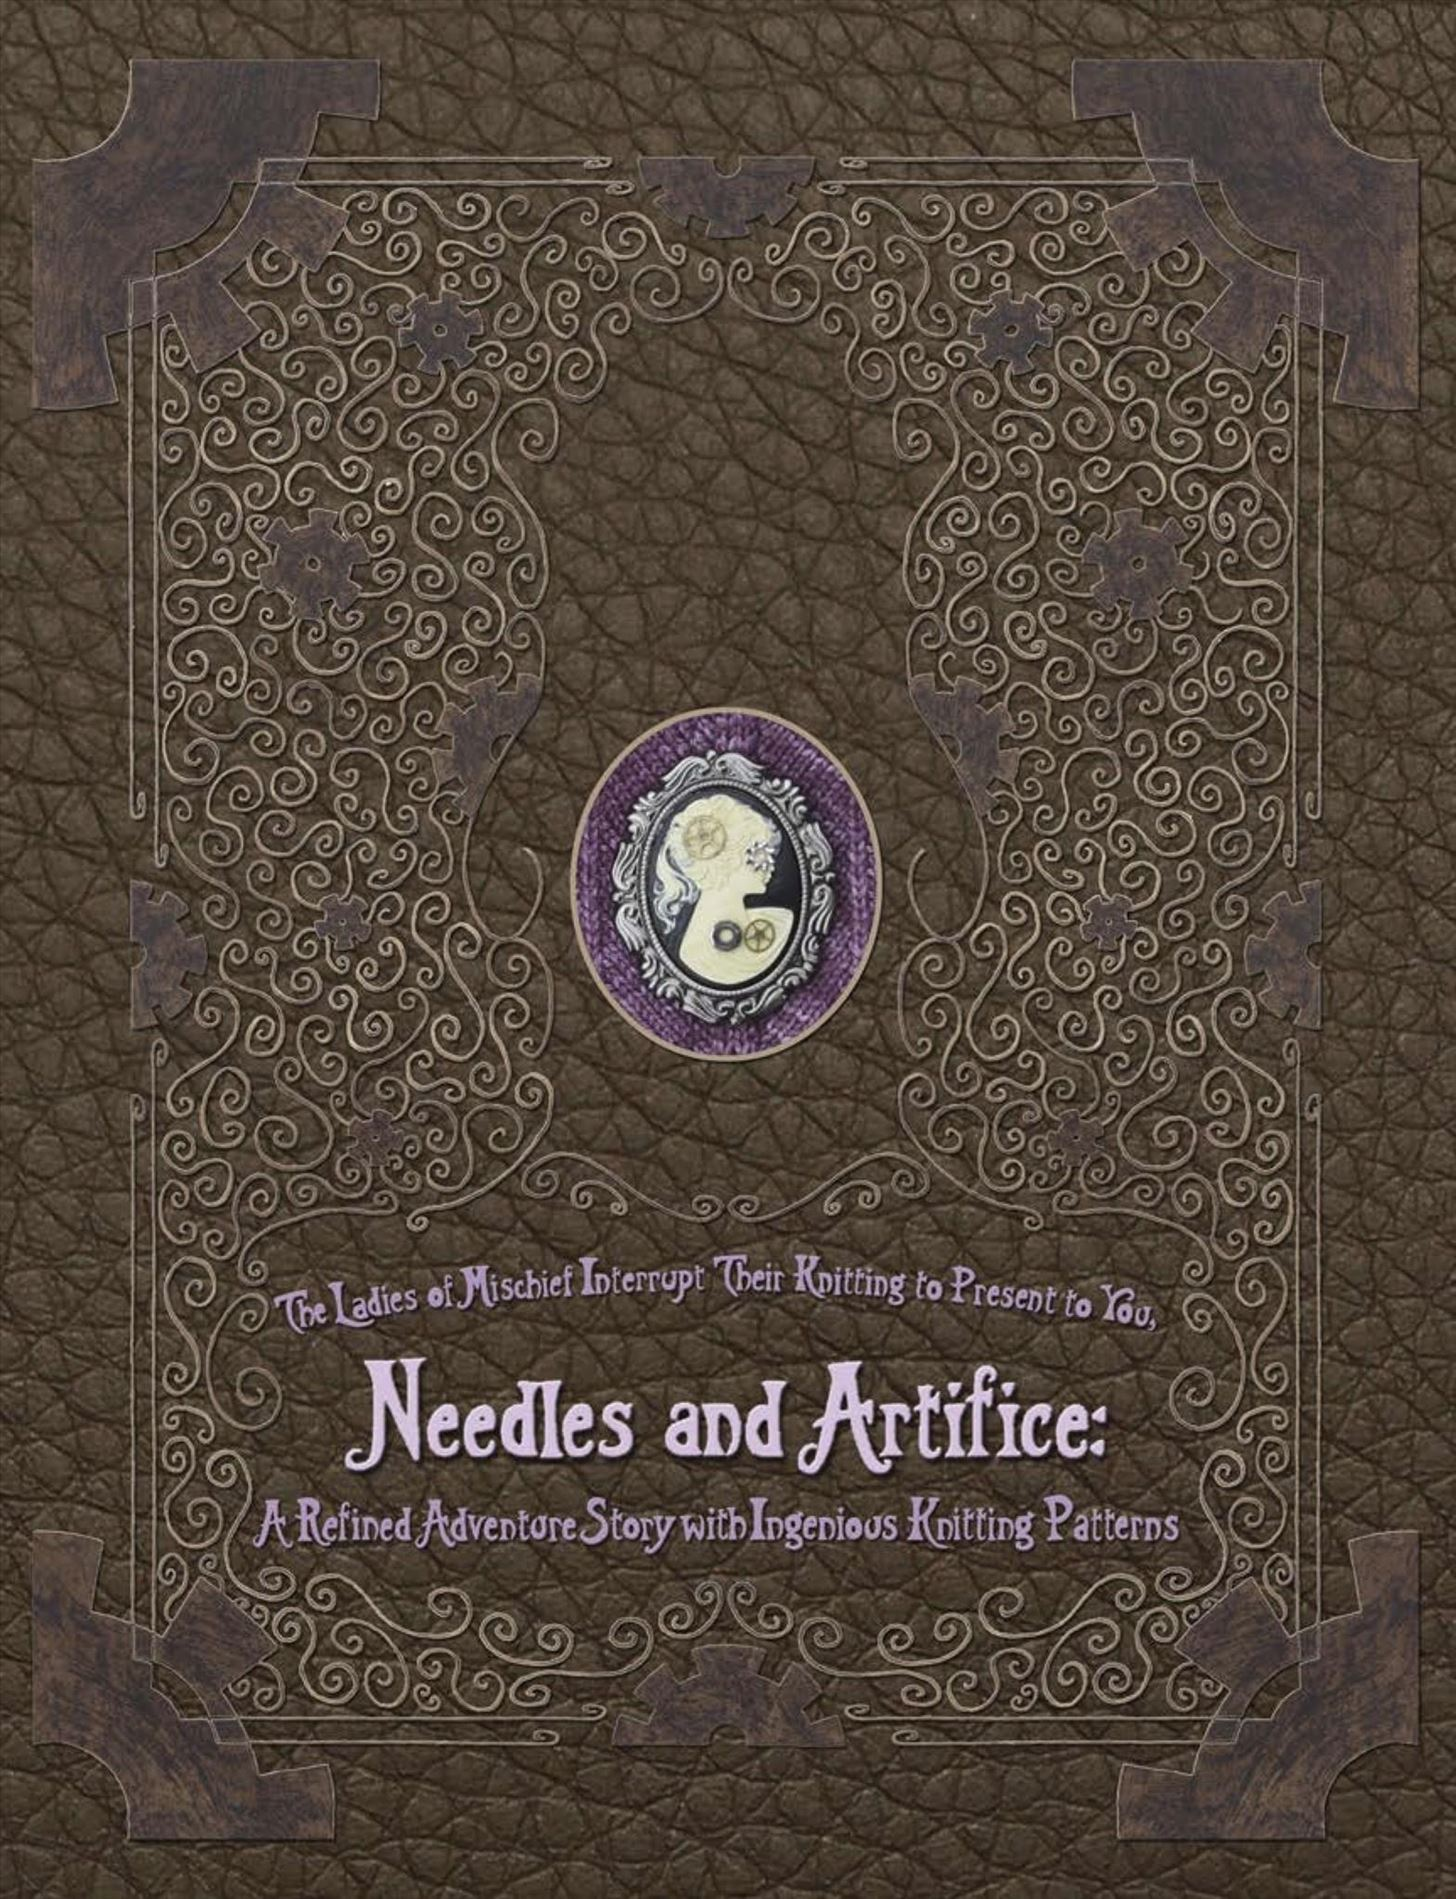 Steampunk Adventure Book About... Knitting?